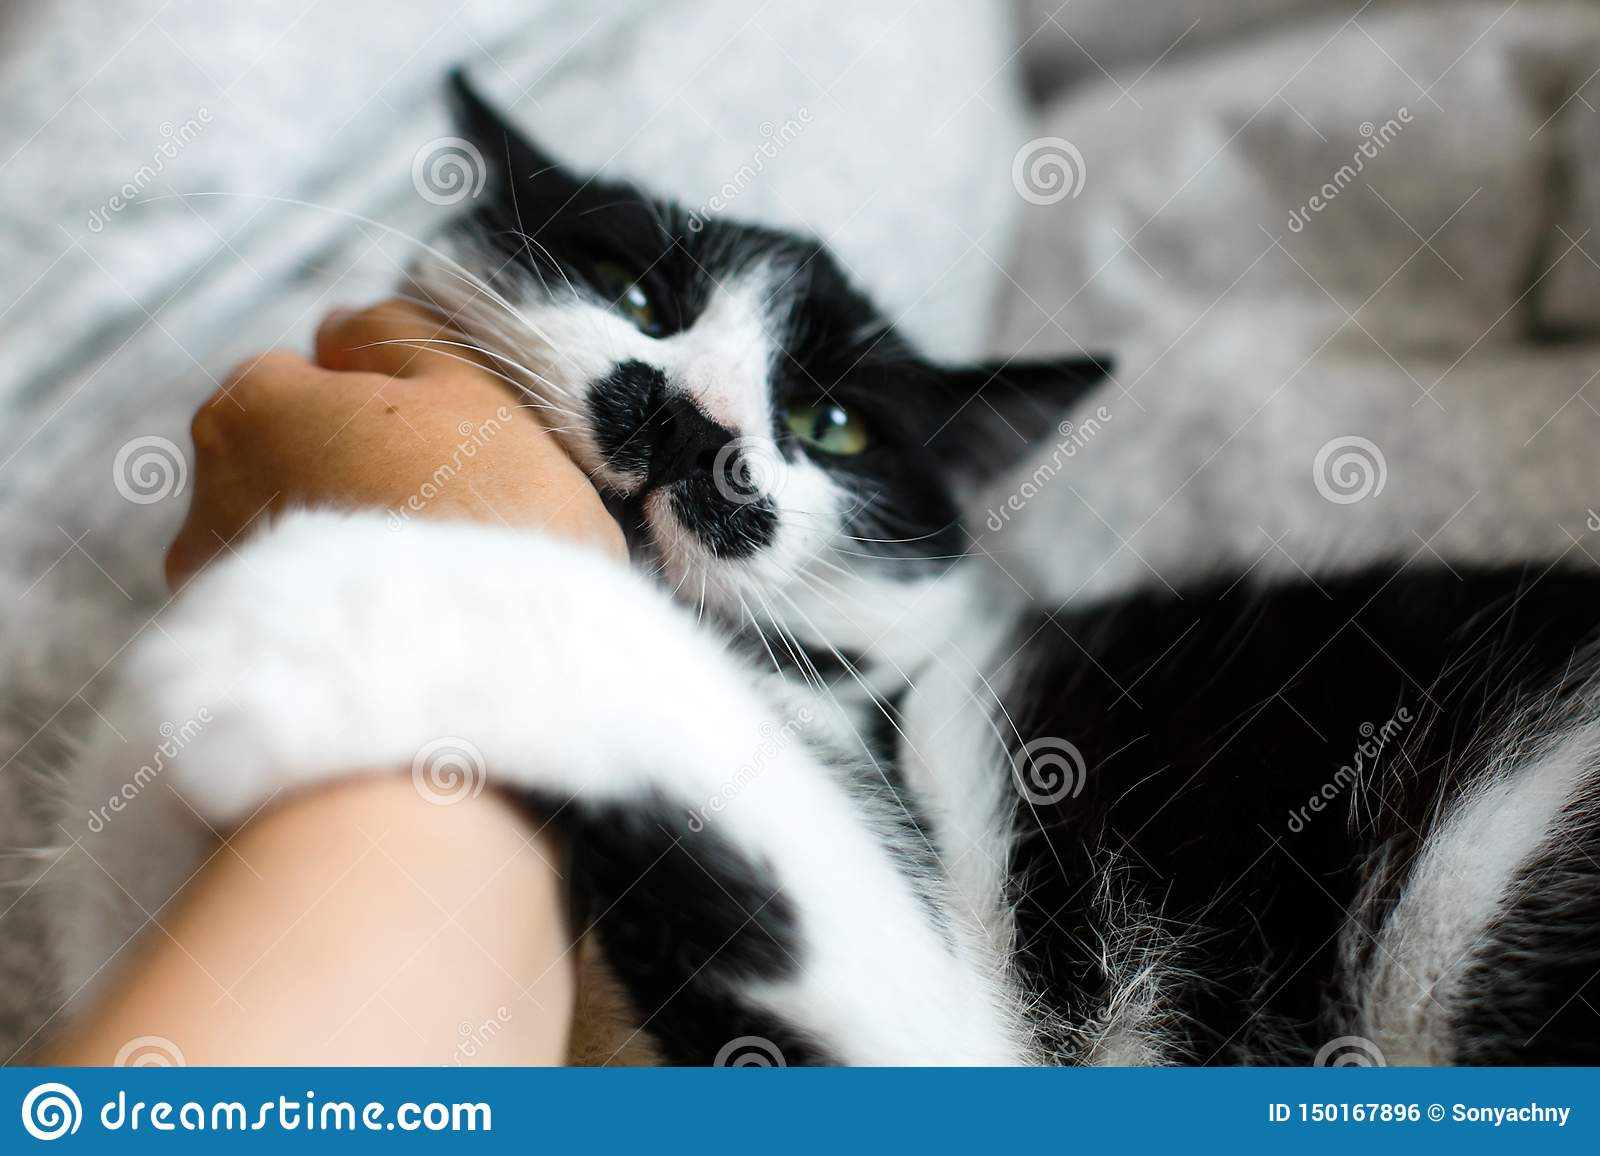 Cute cat with moustache biting owner hand on bed. Funny black and white kitty with angry emotions bites girl hand and scratches on